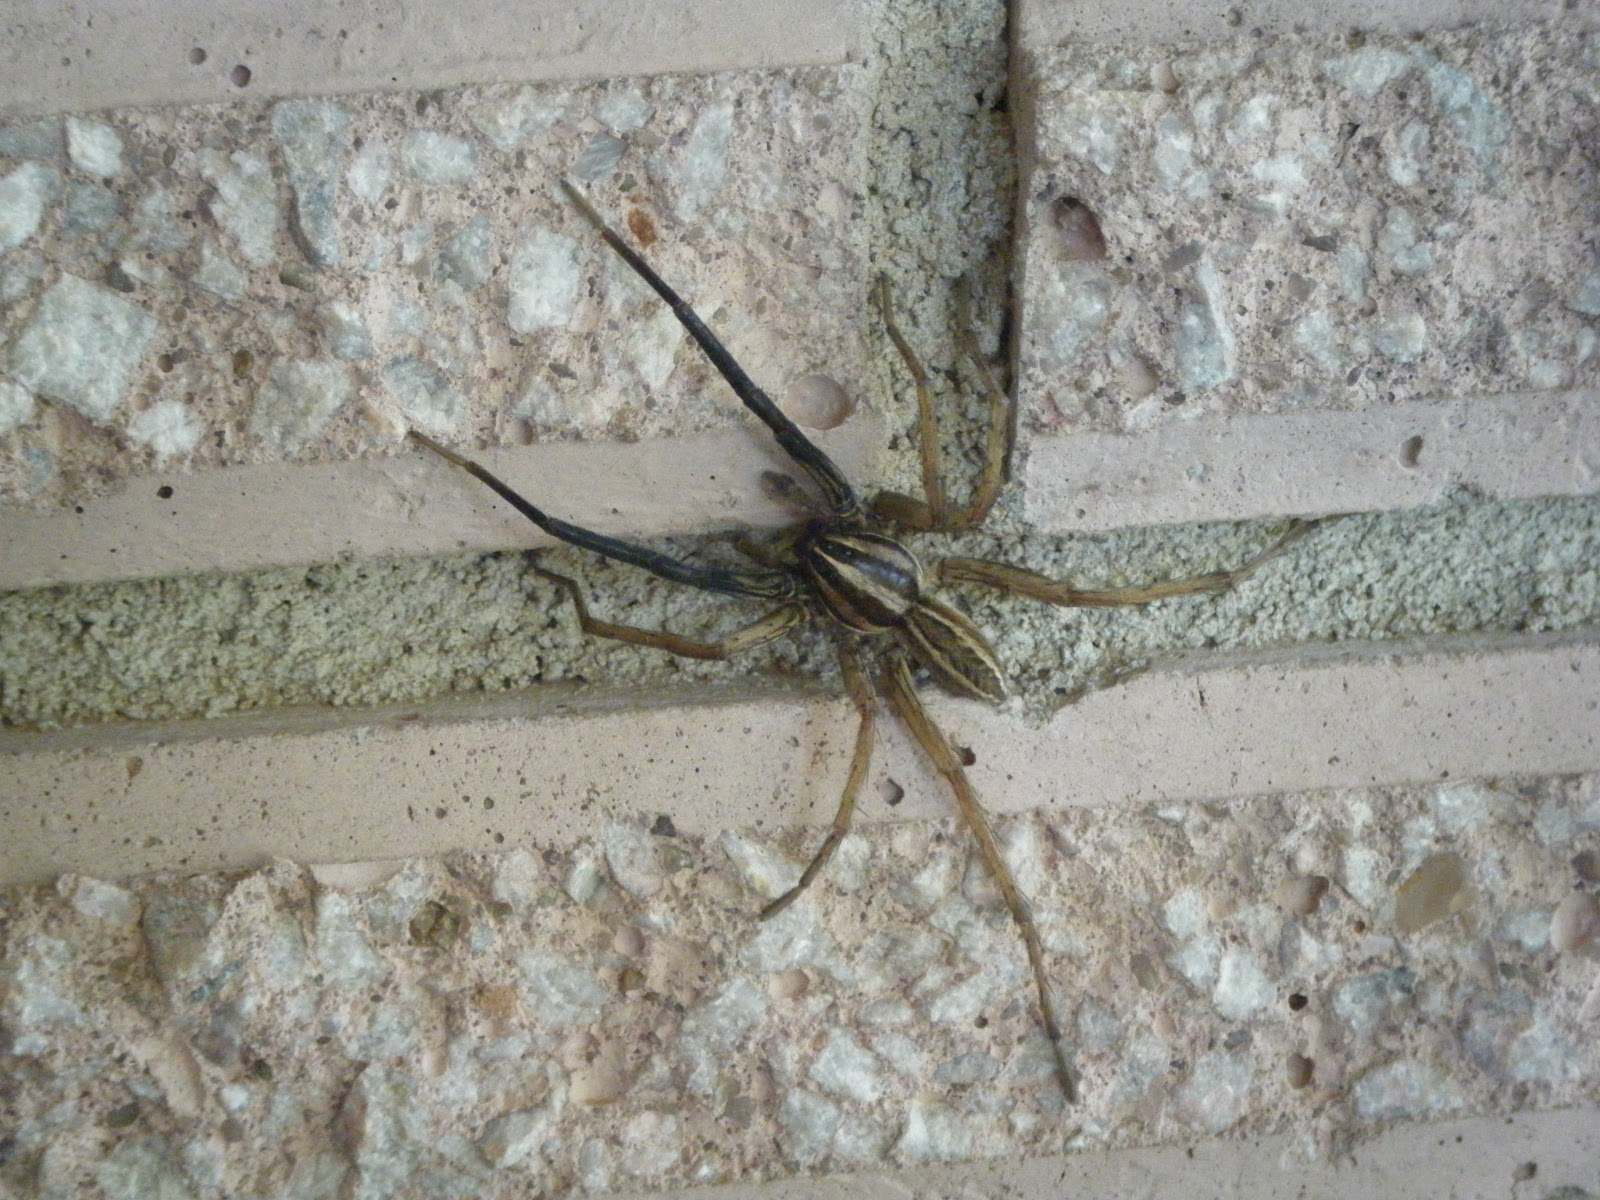 Windy Acres Diary: Harmless Wolf Spider